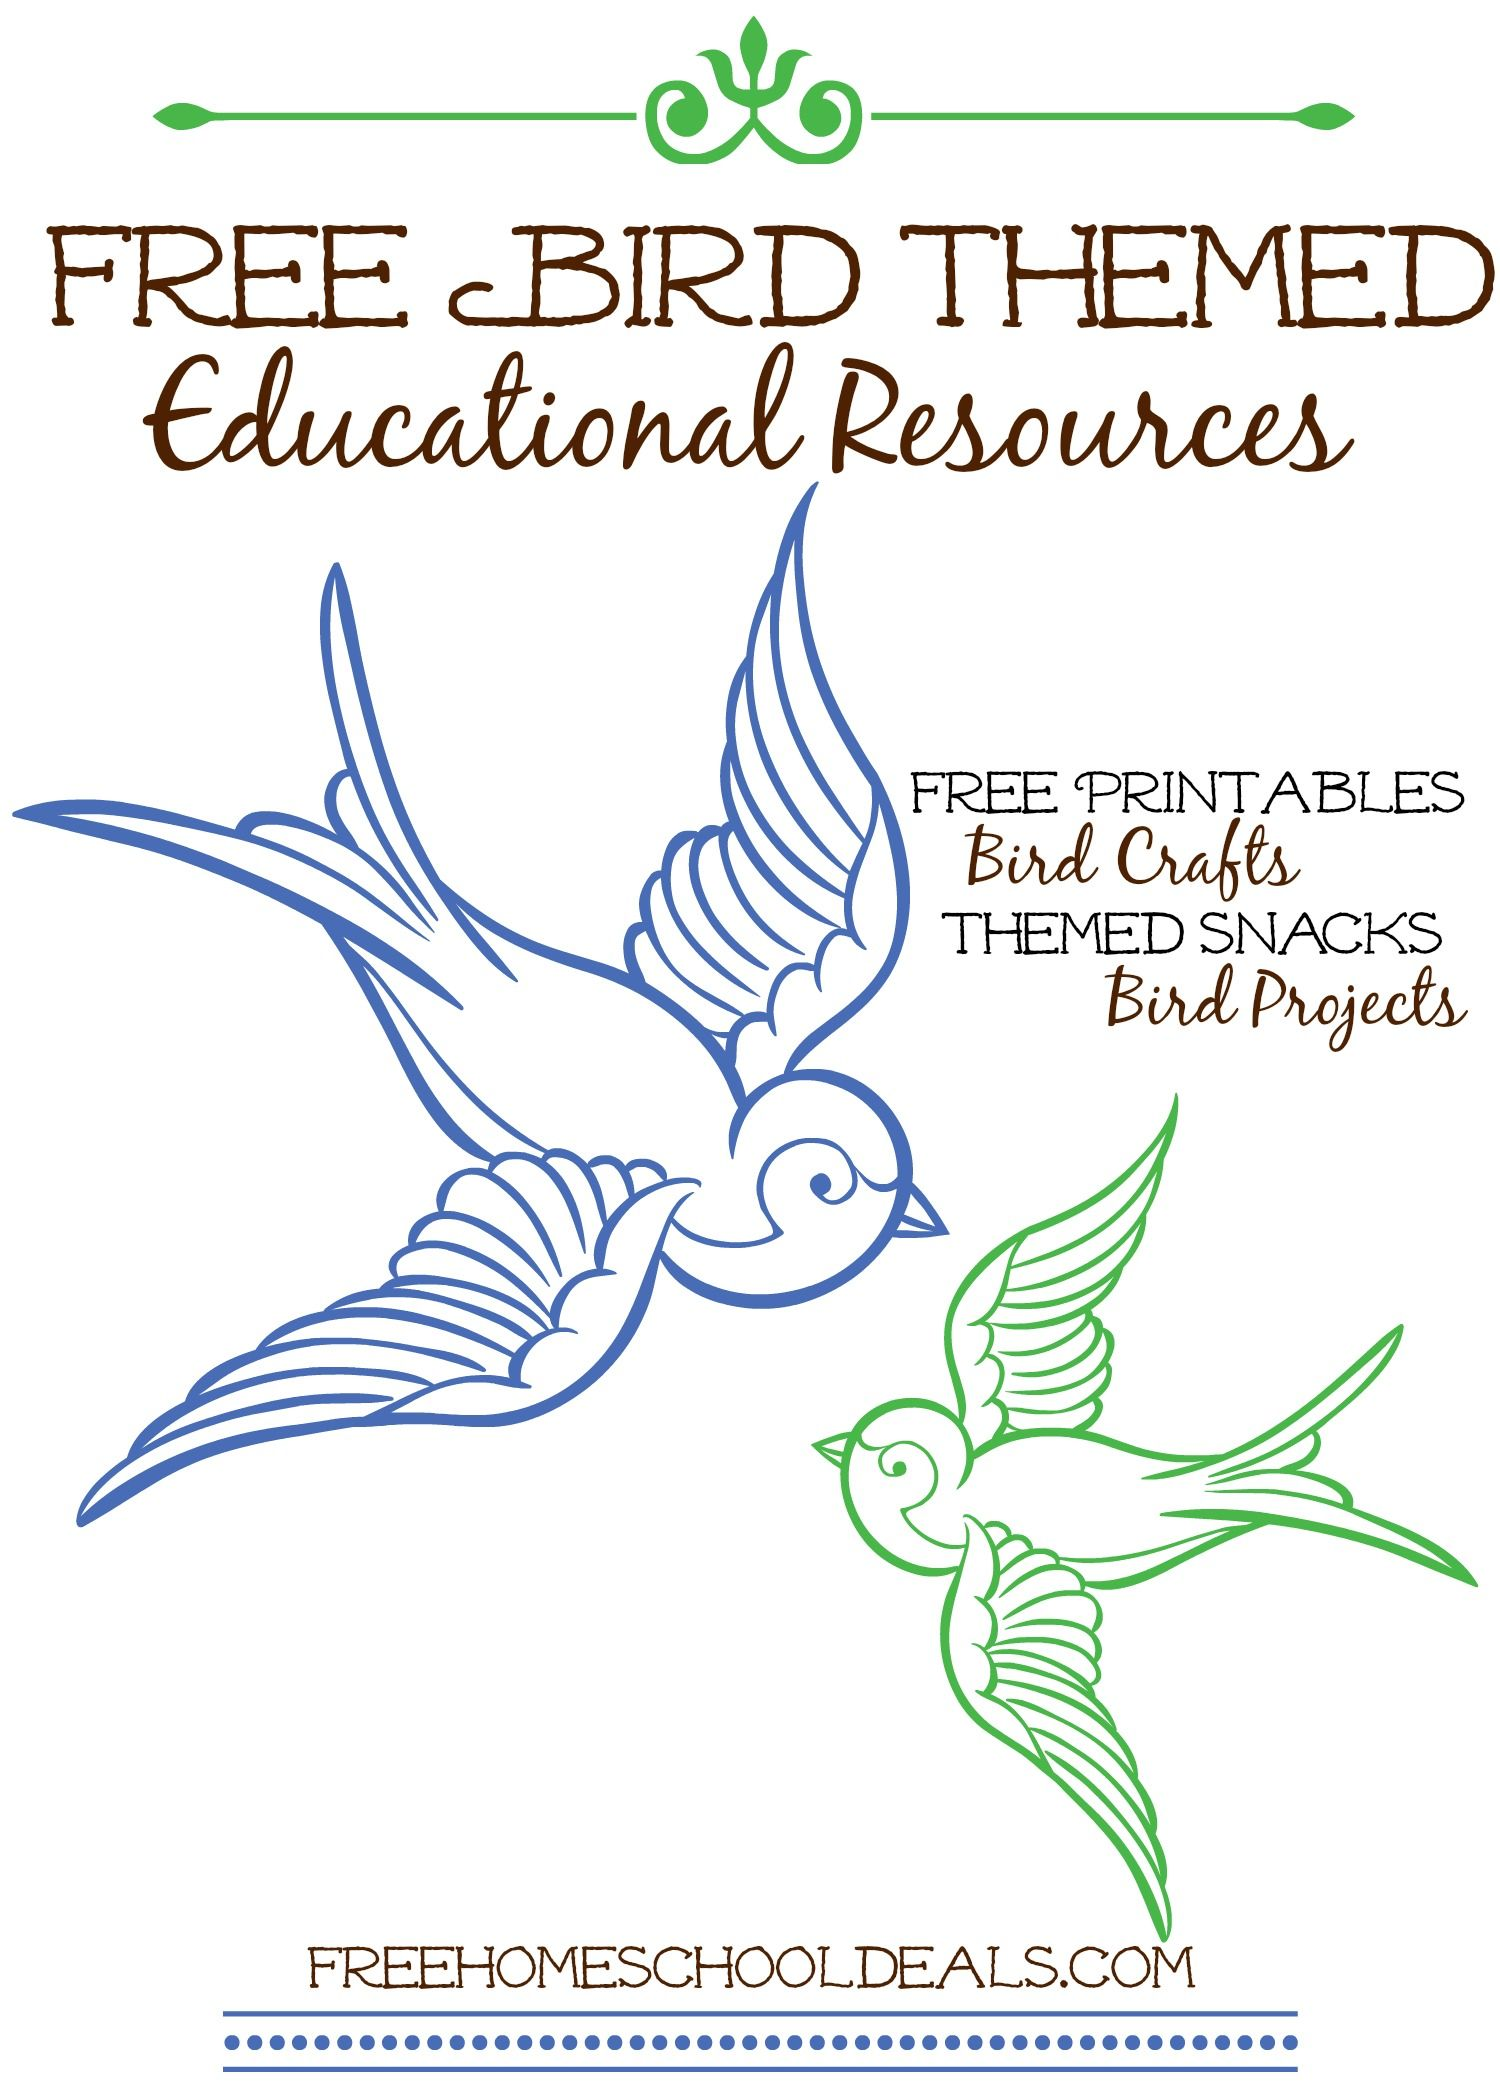 free bird themed educational resources kid blogger network activities crafts homeschool. Black Bedroom Furniture Sets. Home Design Ideas